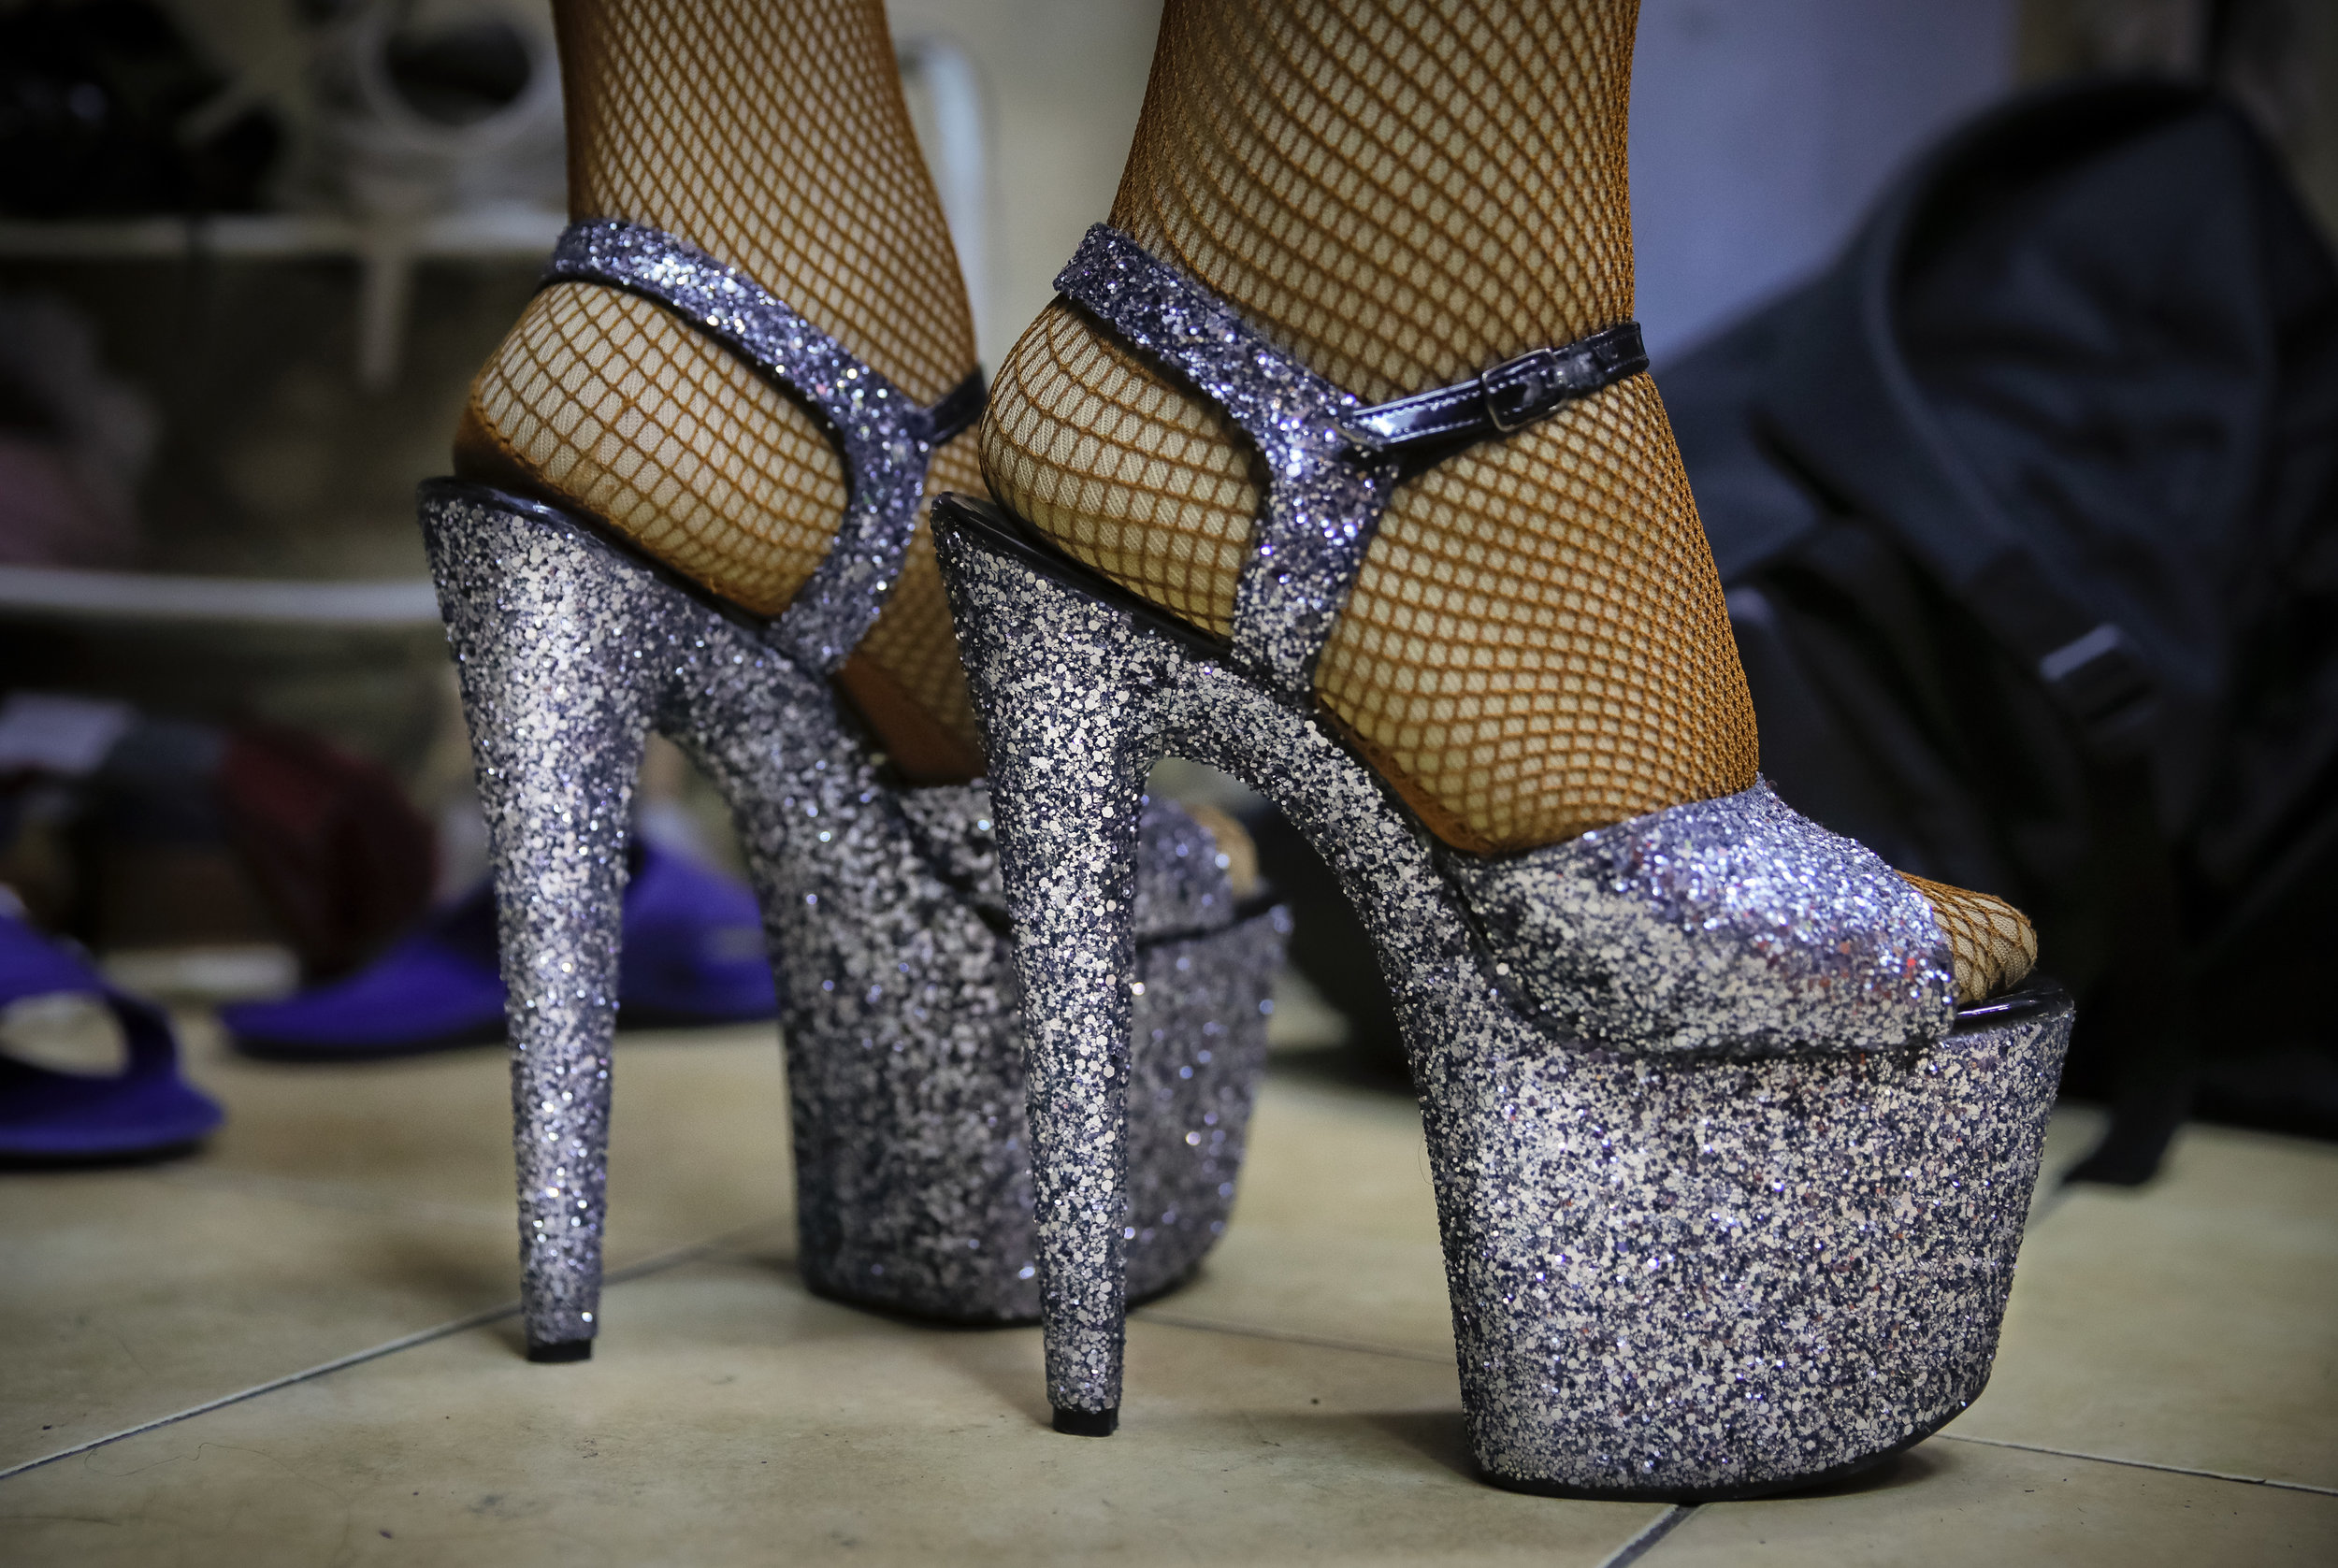 Sergey, who uses the stage name Bomba (the bomb) wears thigh-high boots at the Fame gay club, during the 2018 soccer World Cup in Yekaterinburg, Russia on Sunday, June 24, 2018. (AP Photo/Vadim Ghirda)